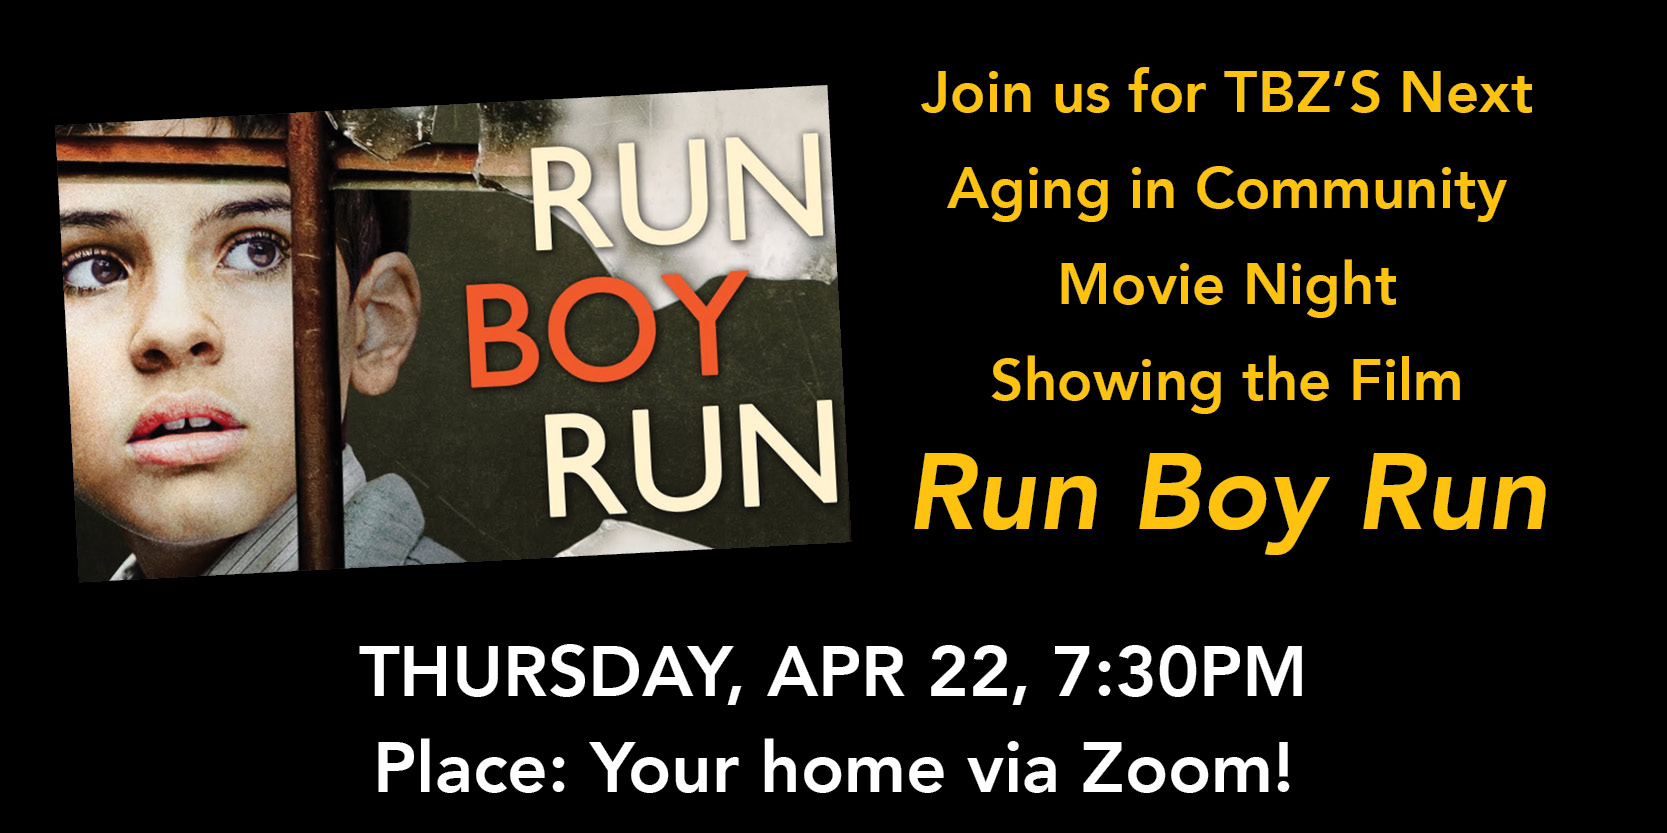 """<a href=""""https://tinyurl.com/TBZAICMovies""""                                     target=""""_blank"""">                                                                 <span class=""""slider_title"""">                                     AIC Movie Night: Run Boy Run - April 22                                </span>                                                                 </a>                                                                                                                                                                                       <span class=""""slider_description"""">A superlative saga of courage and compassion, Run Boy Run tells the extraordinary true story of a young Polish boy's struggle to outlast the Nazi occupation and maintain his Jewish faith through his intrepid will and the kindness of others.</span>                                                                                     <a href=""""https://tinyurl.com/TBZAICMovies"""" class=""""slider_link""""                             target=""""_blank"""">                             Join here!                            </a>"""